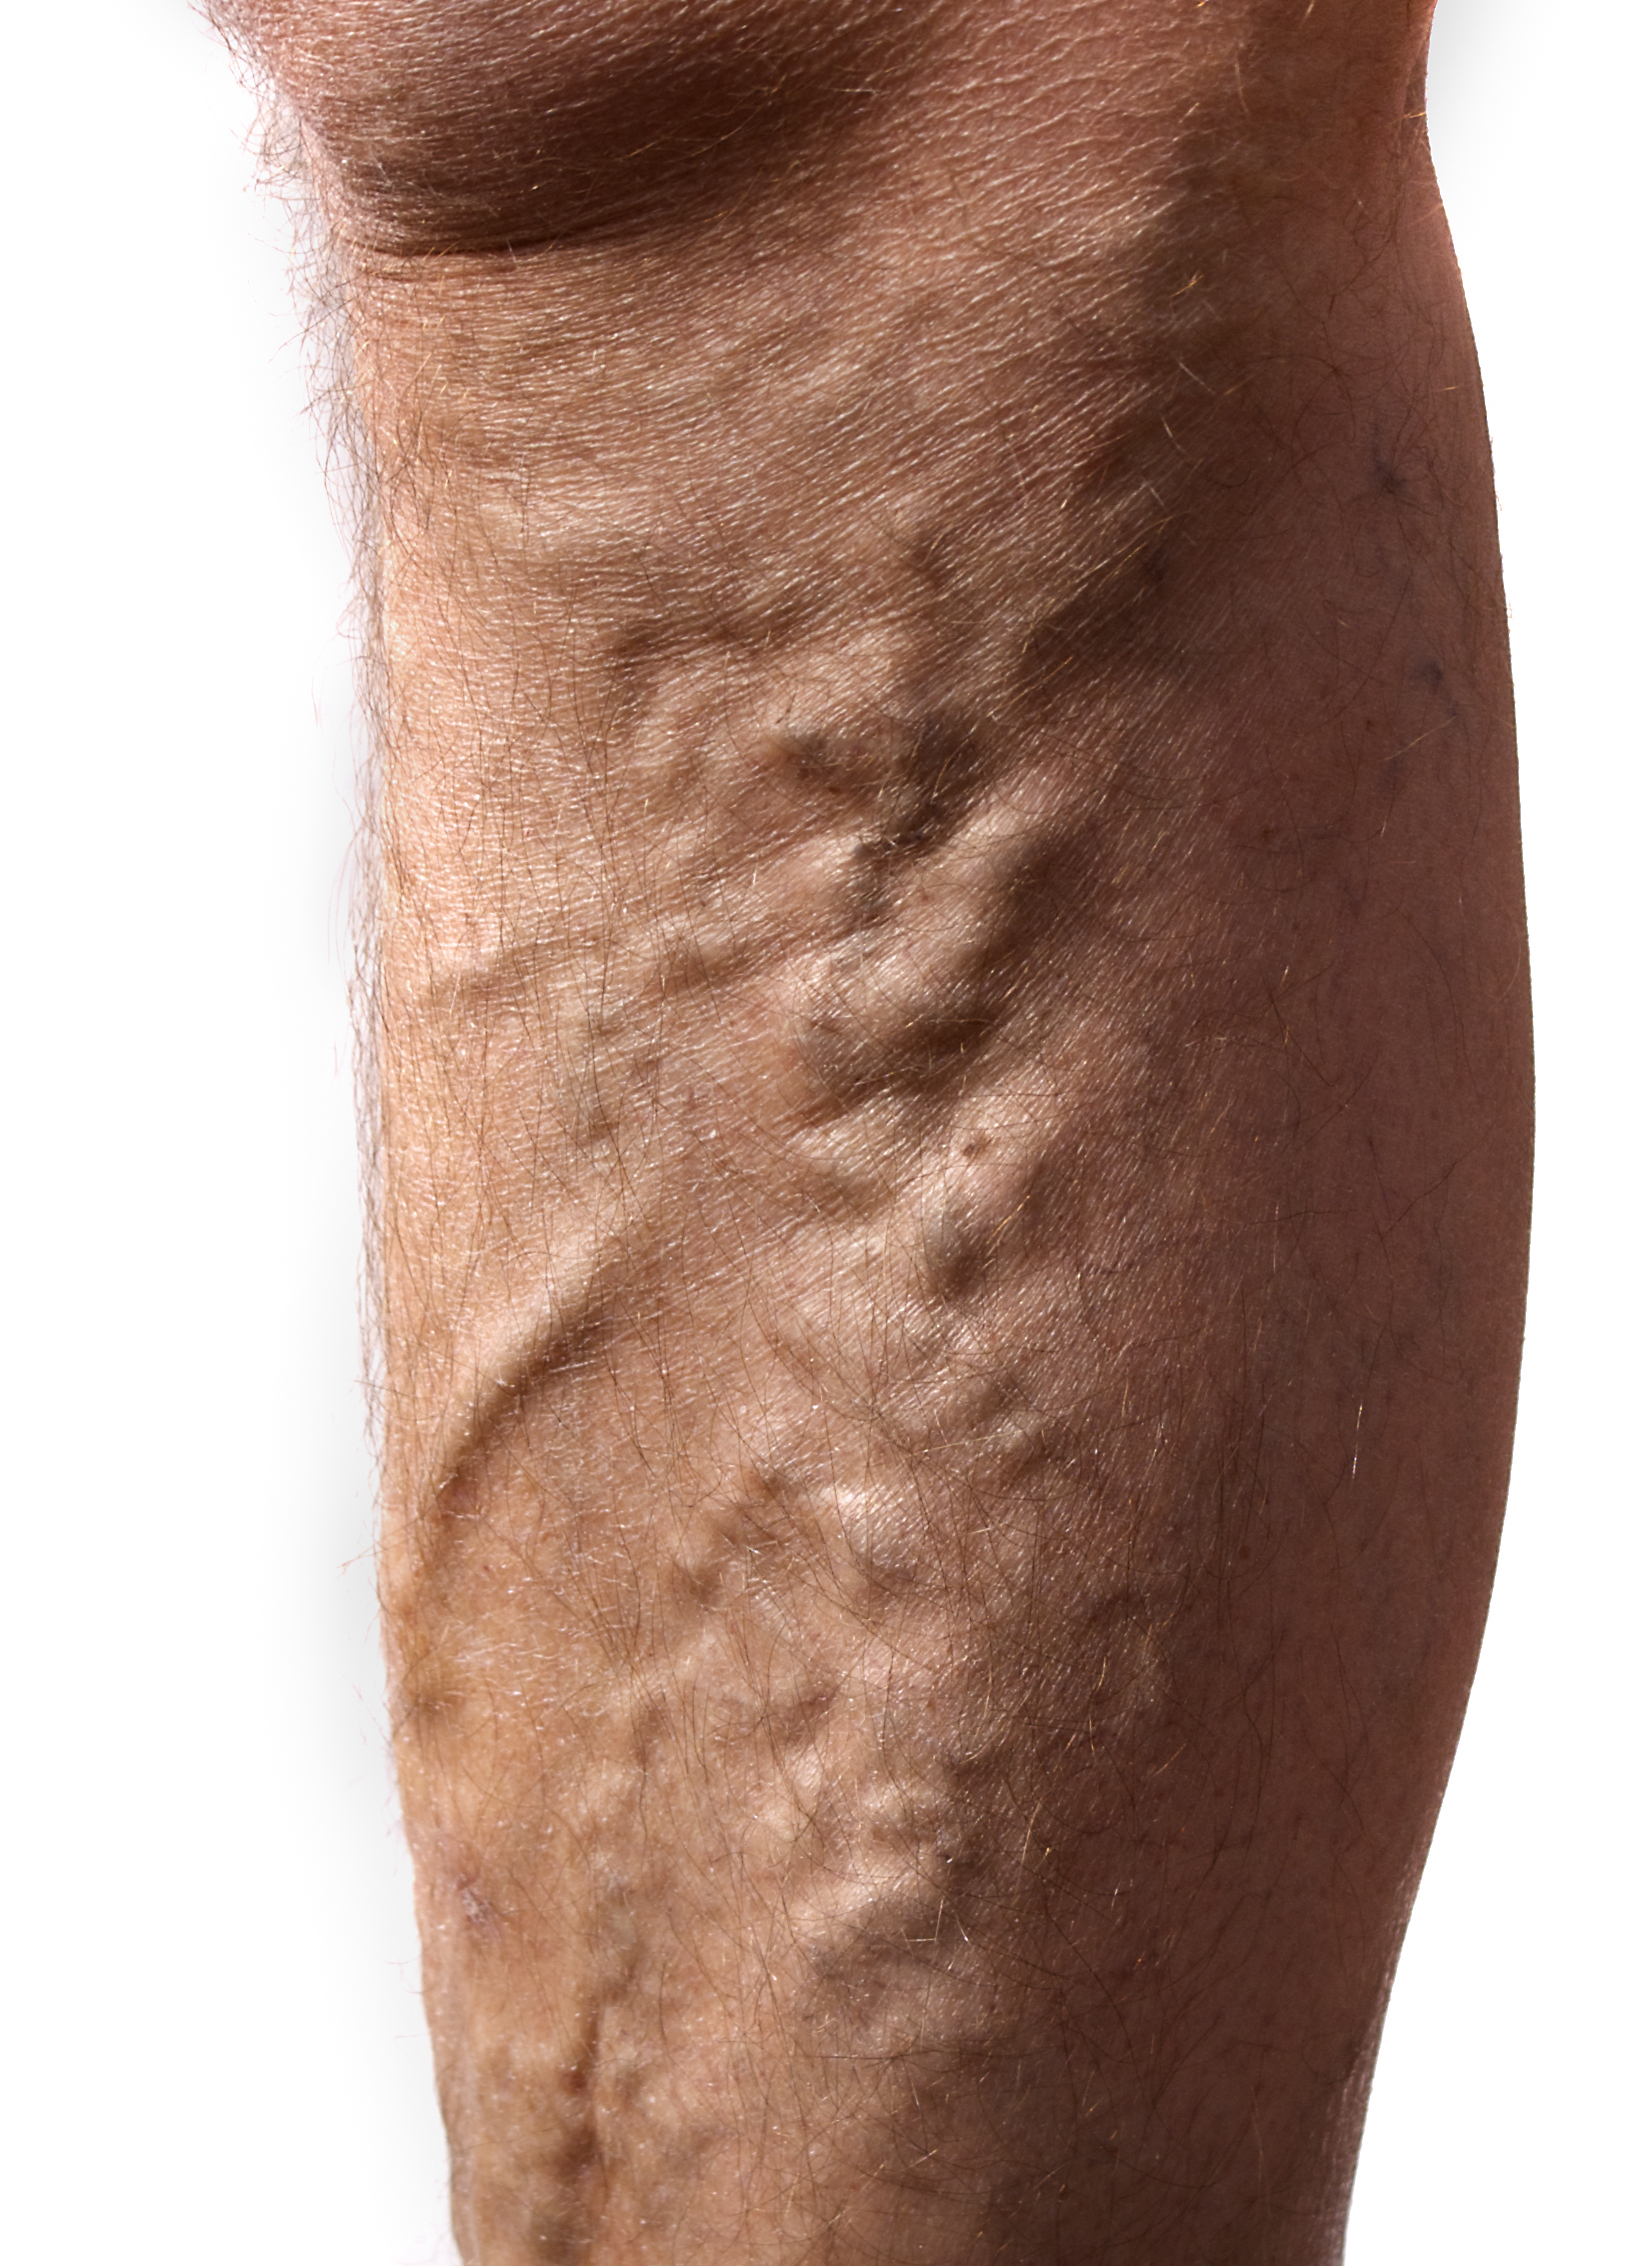 Example of Varicose Veins